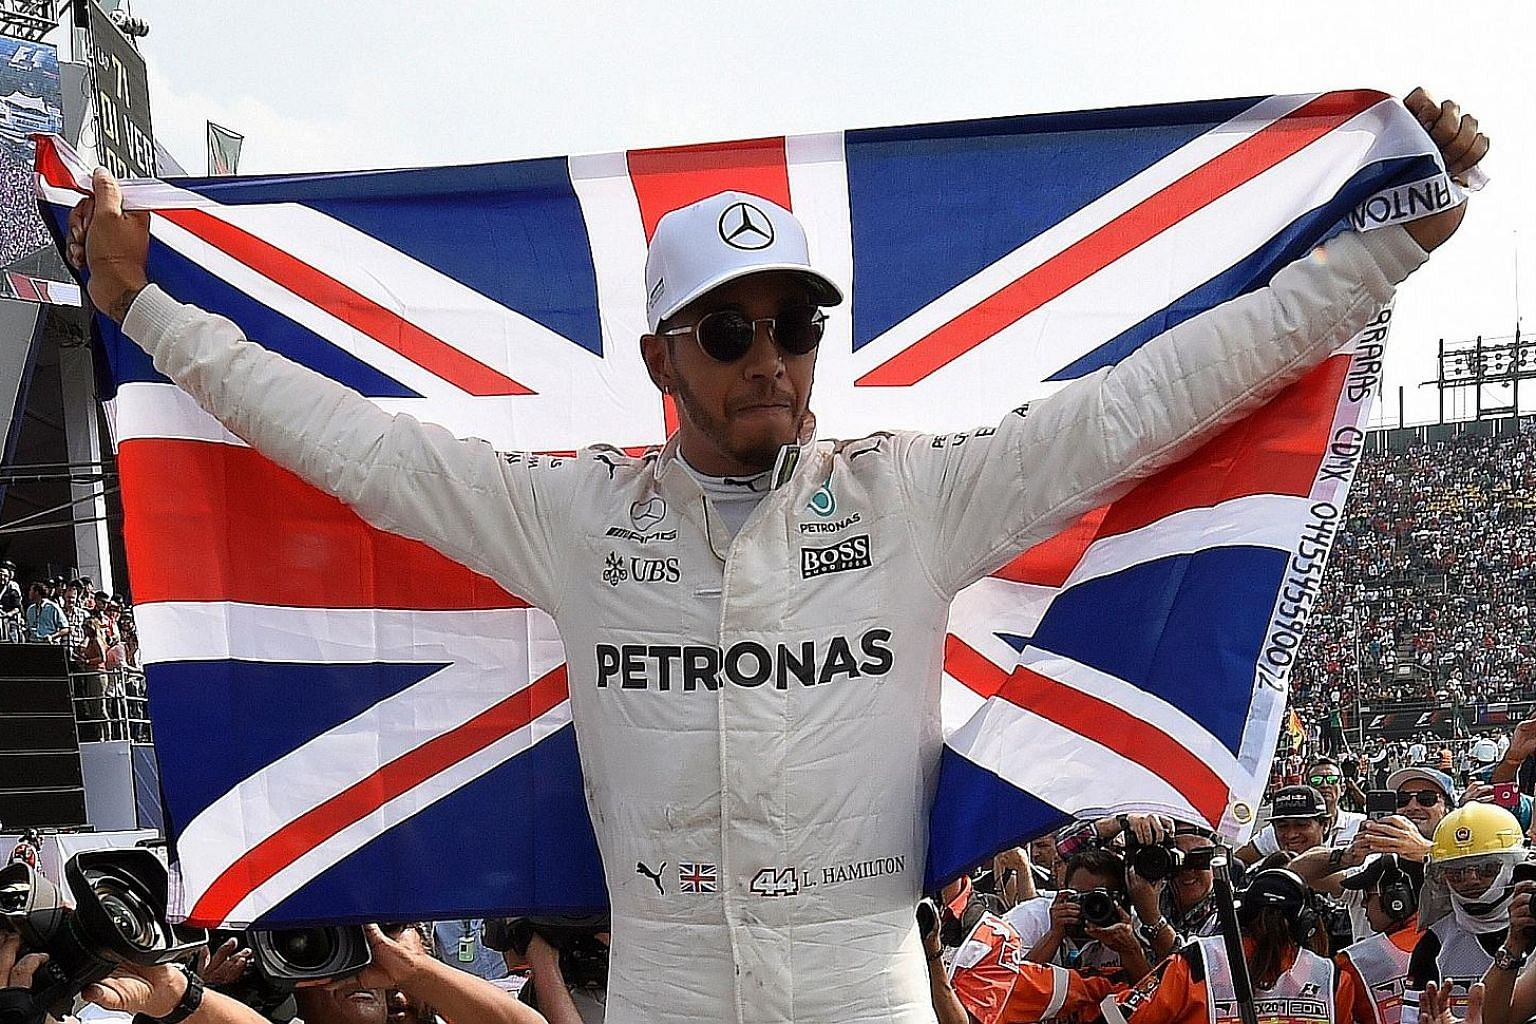 Revelations in the Paradise Papers allege that Lewis Hamilton received a $6 million VAT refund in 2013.